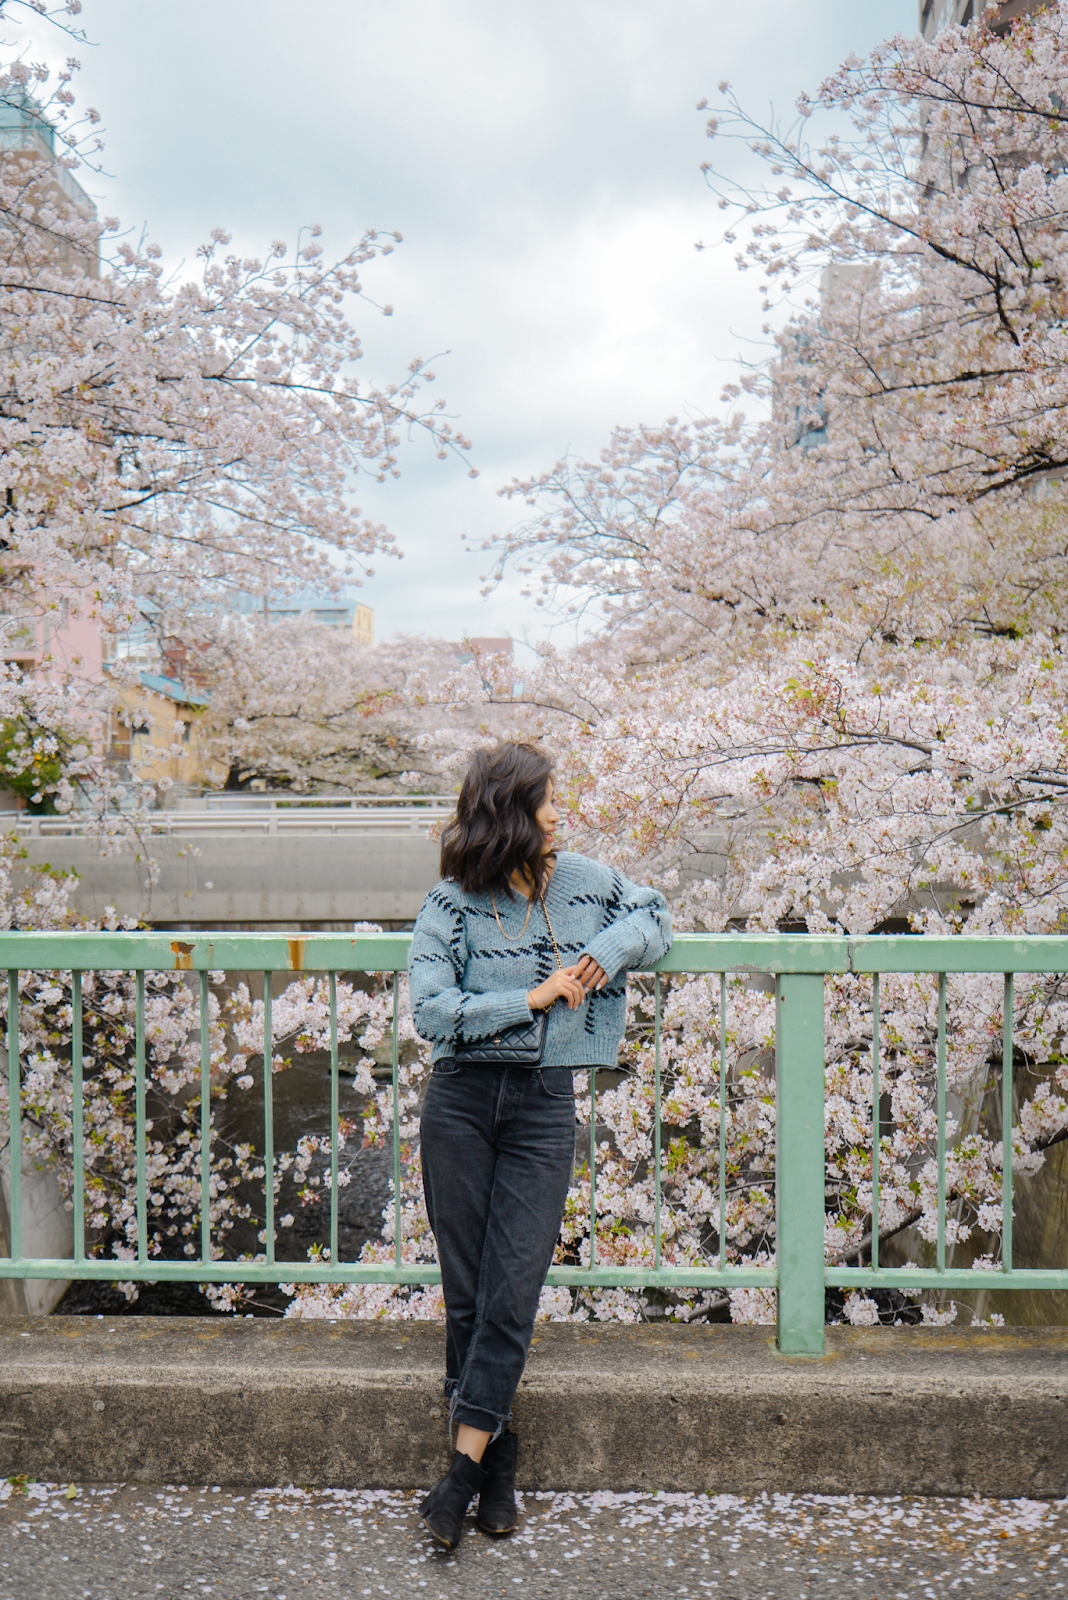 Local spot for cherry blossom photos, Tokyo's Not So Secret Cherry Blossoms Spots That You Might Not Know Of - Style and Travel Blogger Van Le (FOREVERVANNY.com)